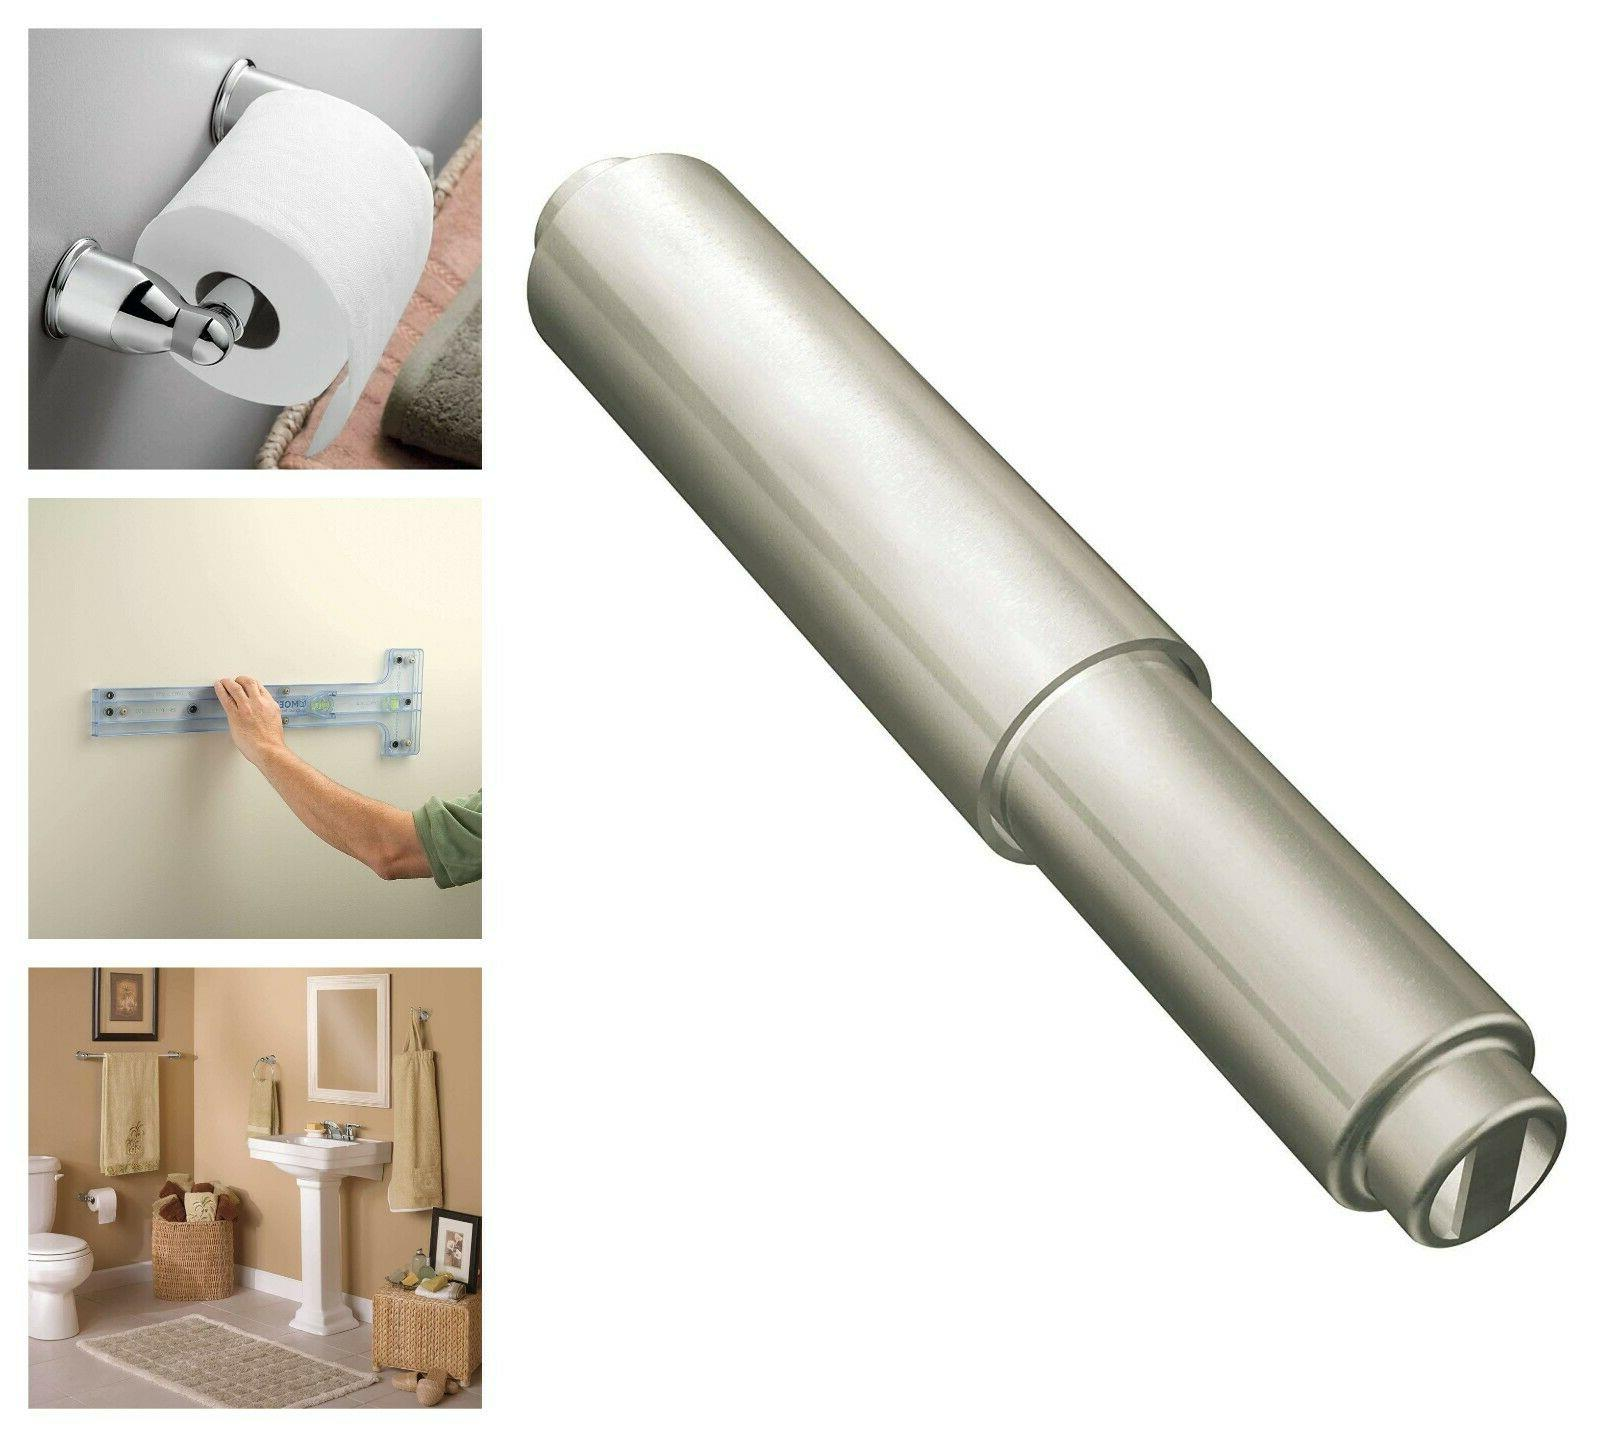 Satin Nickel Finish Toilet Paper Roller Toilet Paper Holder